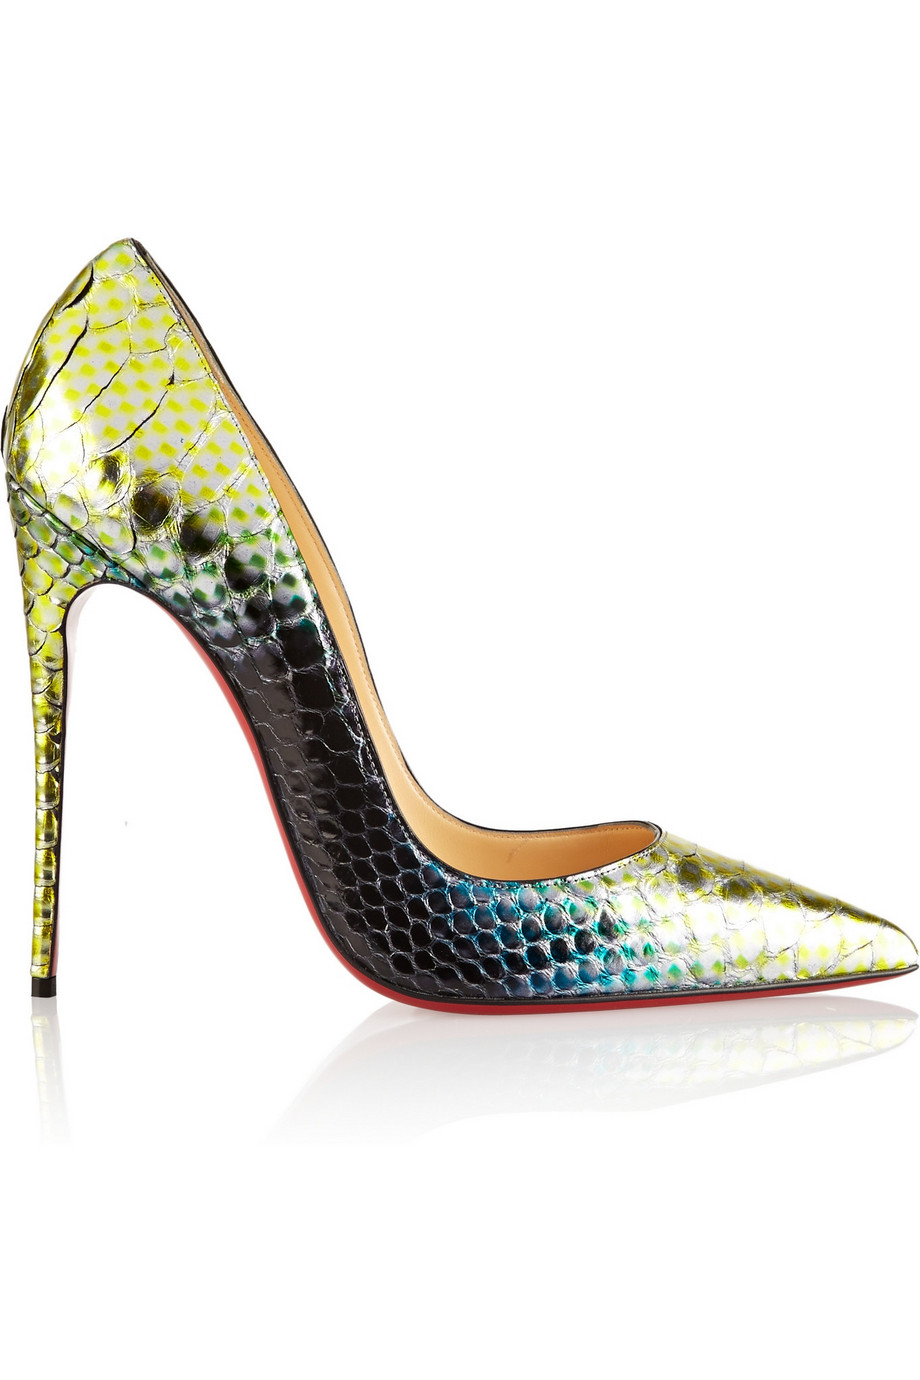 Christian Louboutin So Kate 120 Python Pumps, Green/Metallic, Women's US Size: 8.5, Size: 39